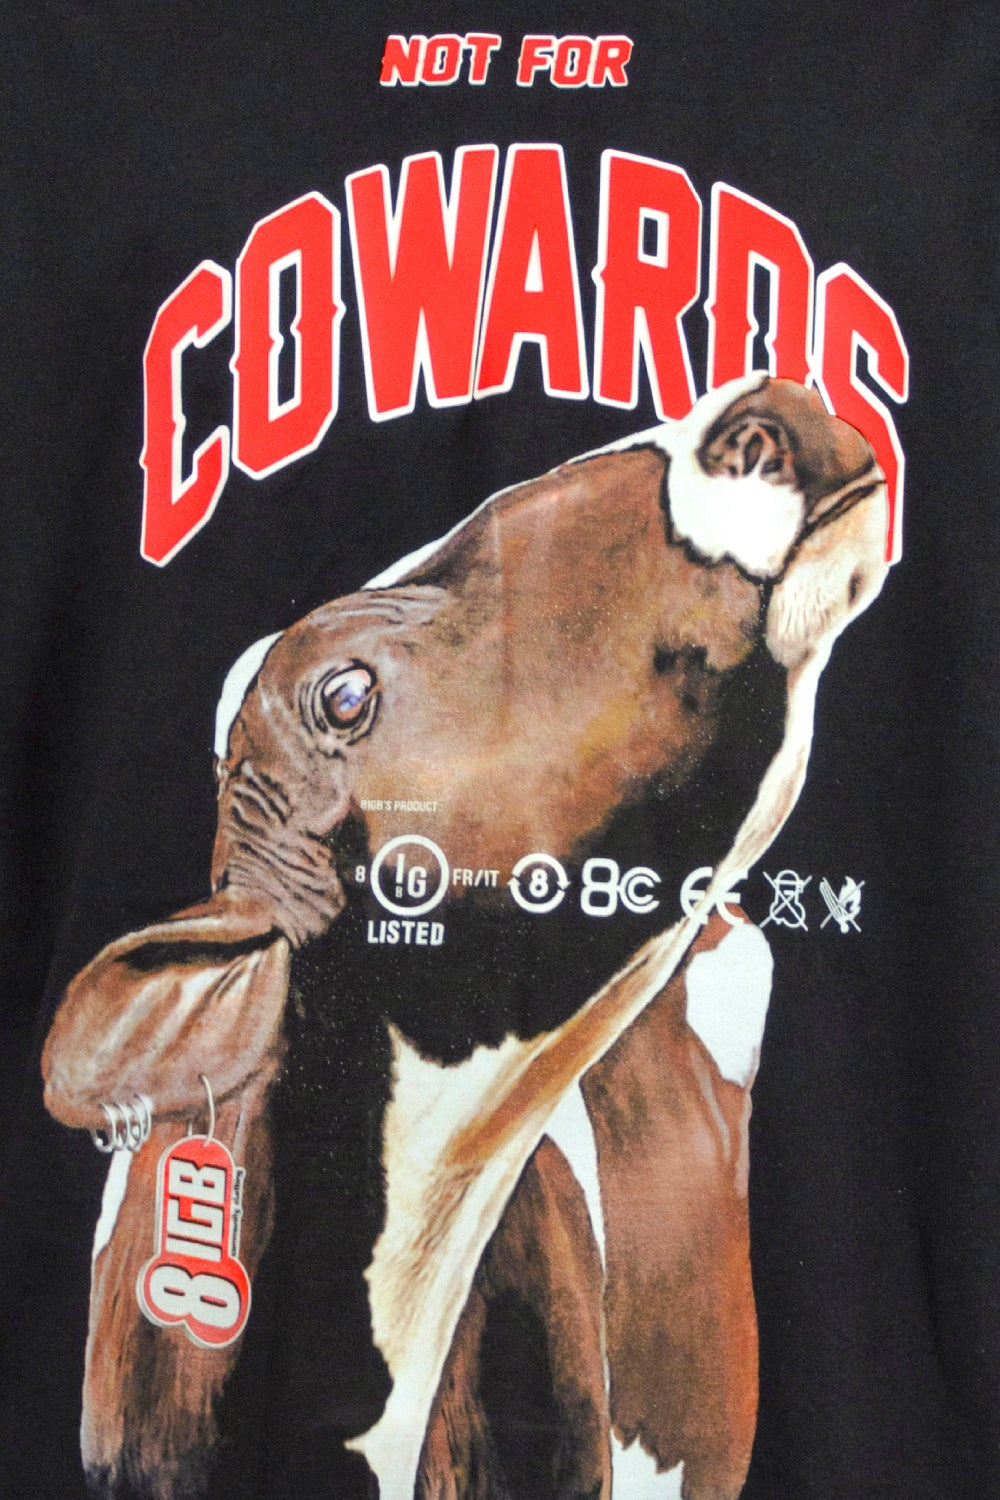 N4 COWARDS COW t-shirt